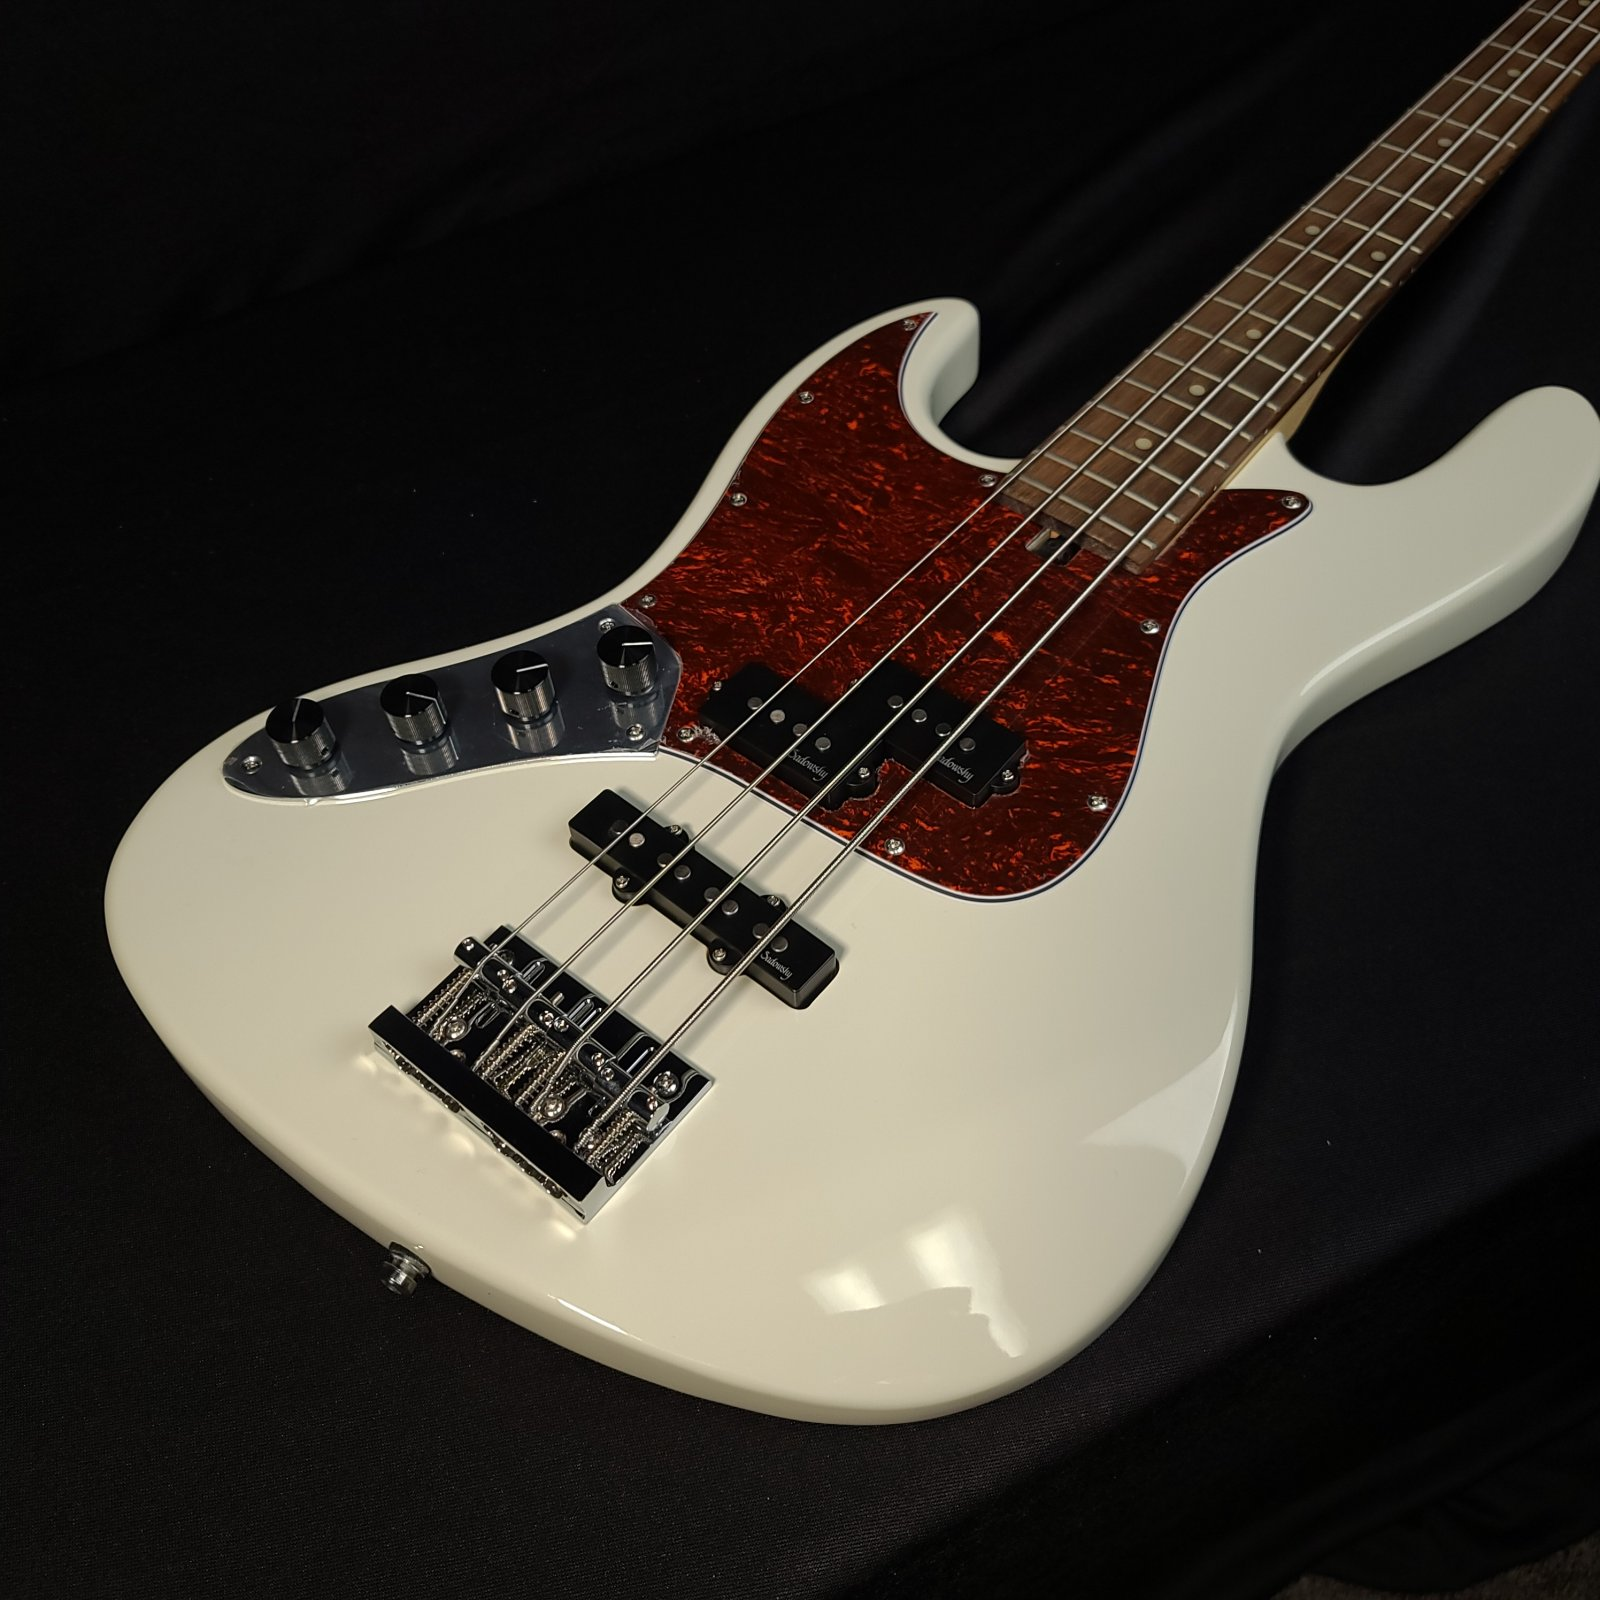 Sadowsky MetroExpress 21 Fret Lefty PJ 4 String Olympic White Bass with Bag